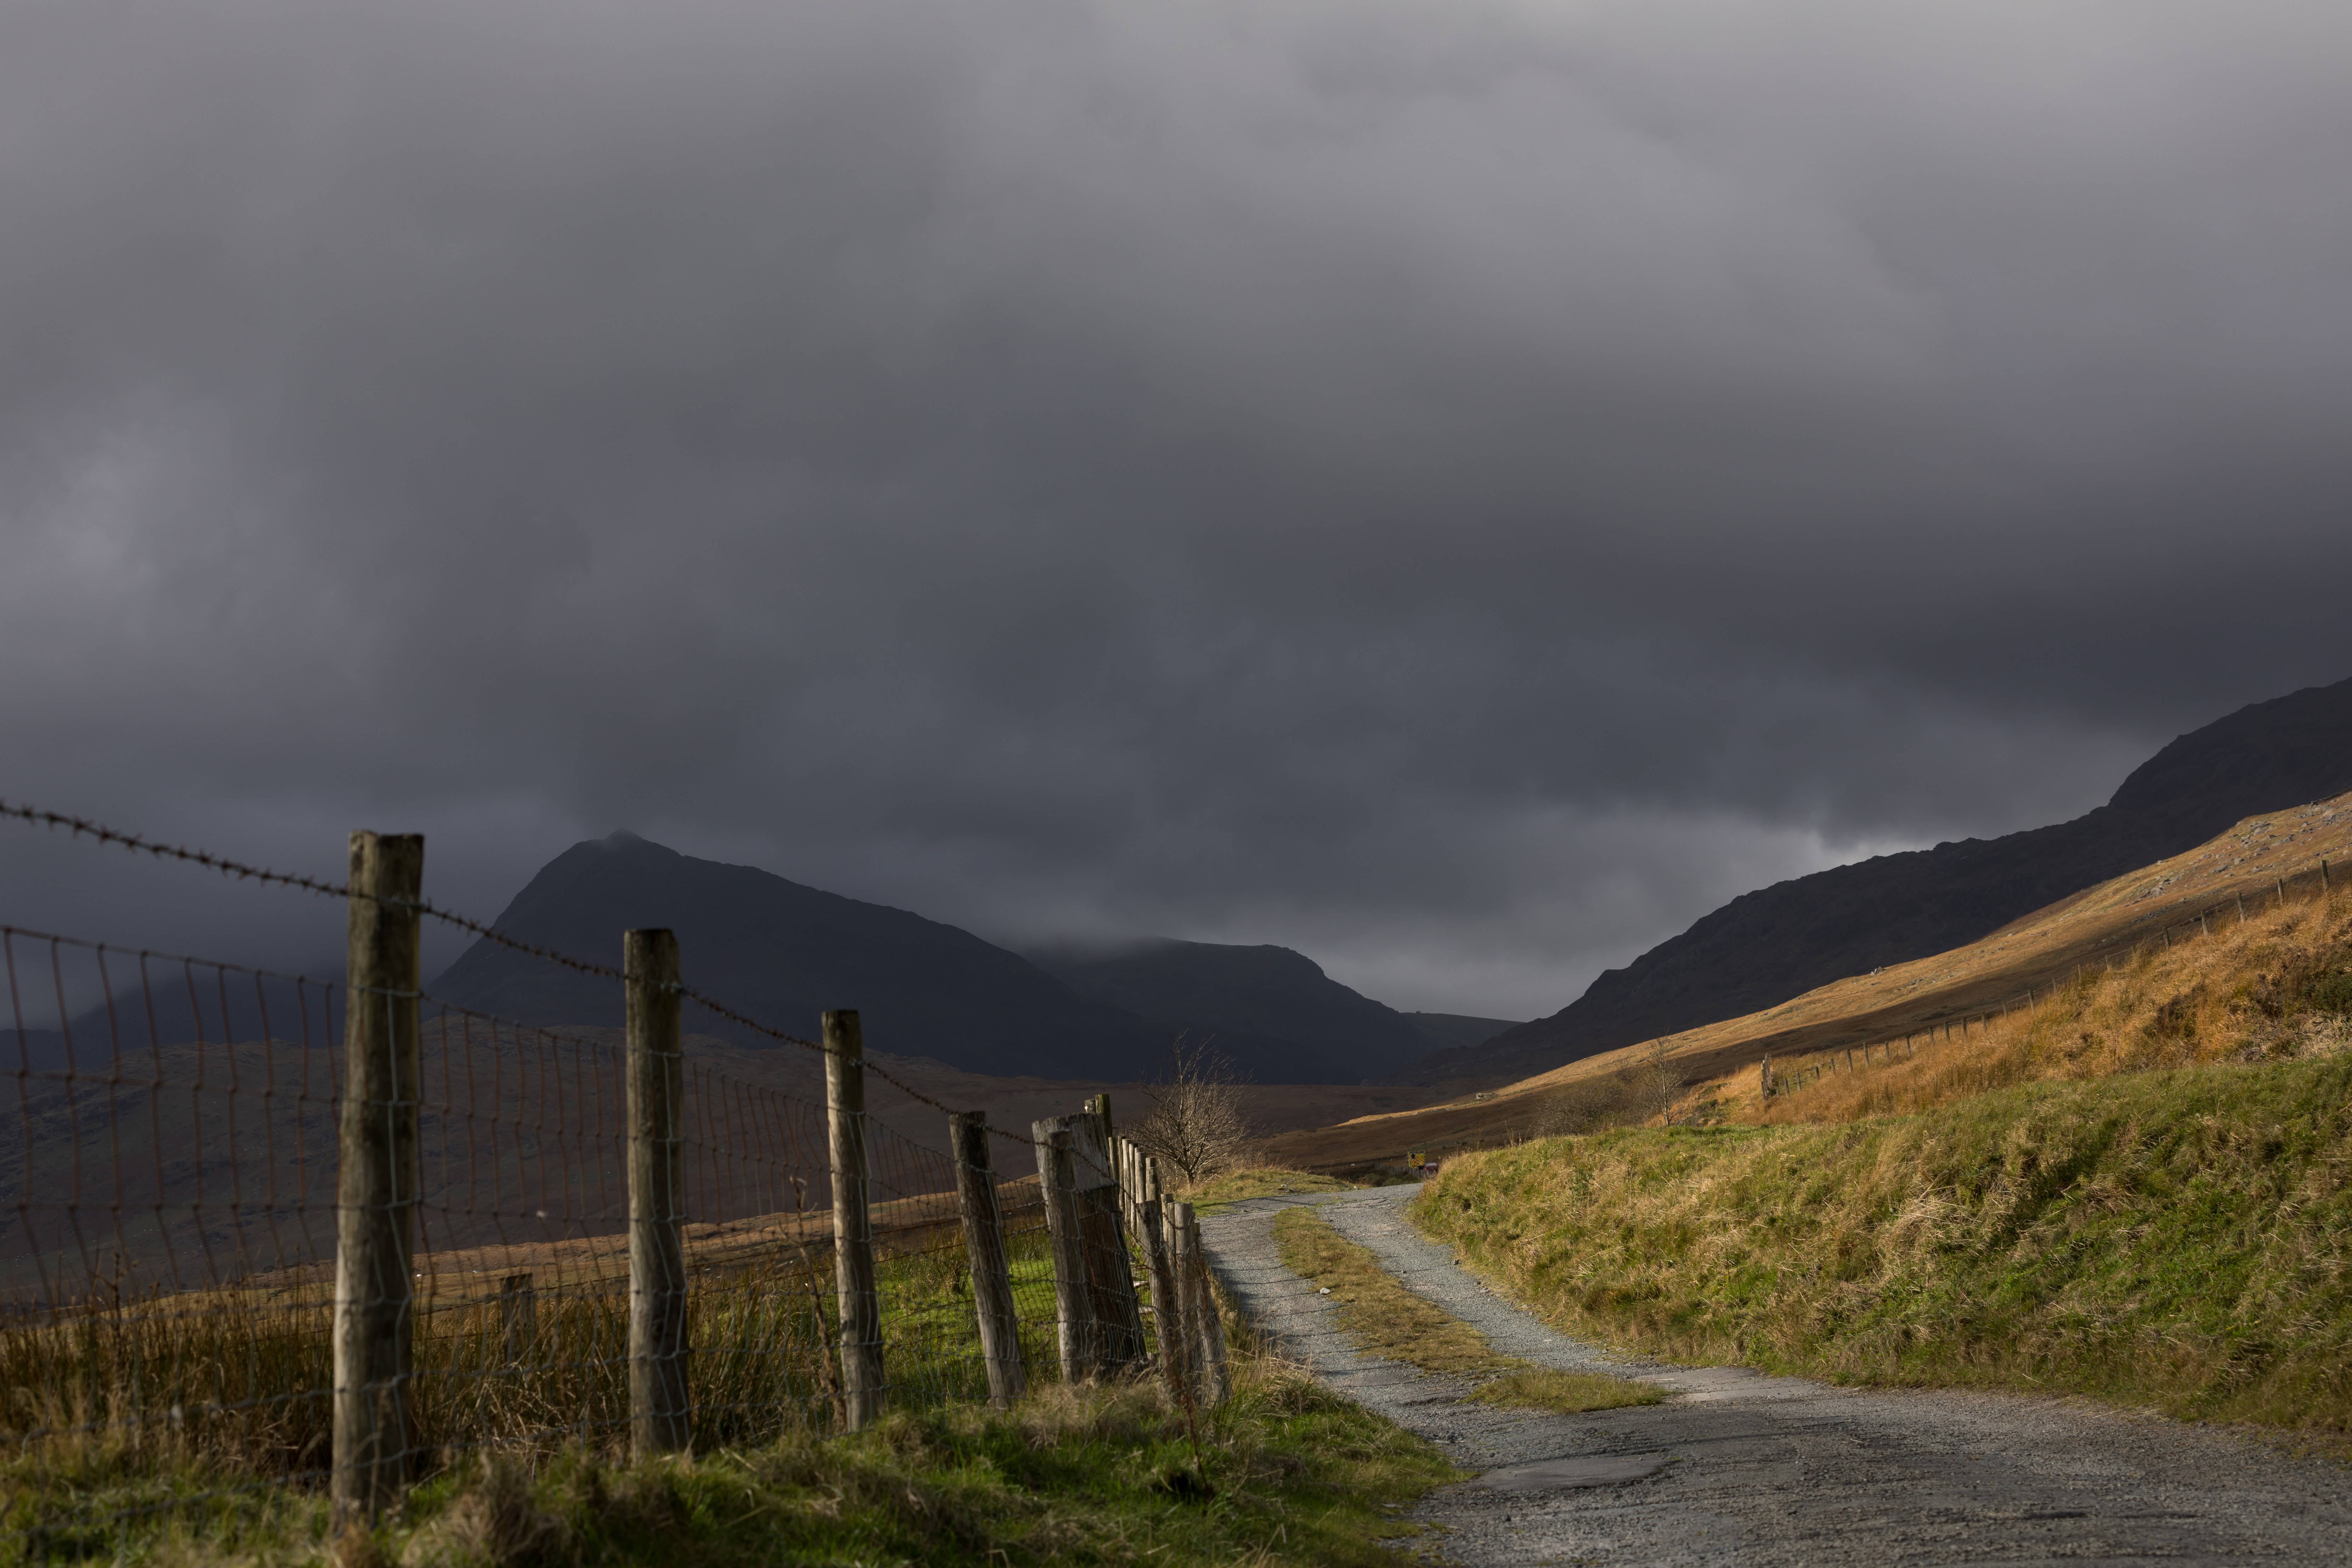 grass covered dirt road leading to mountains under gloomy sky